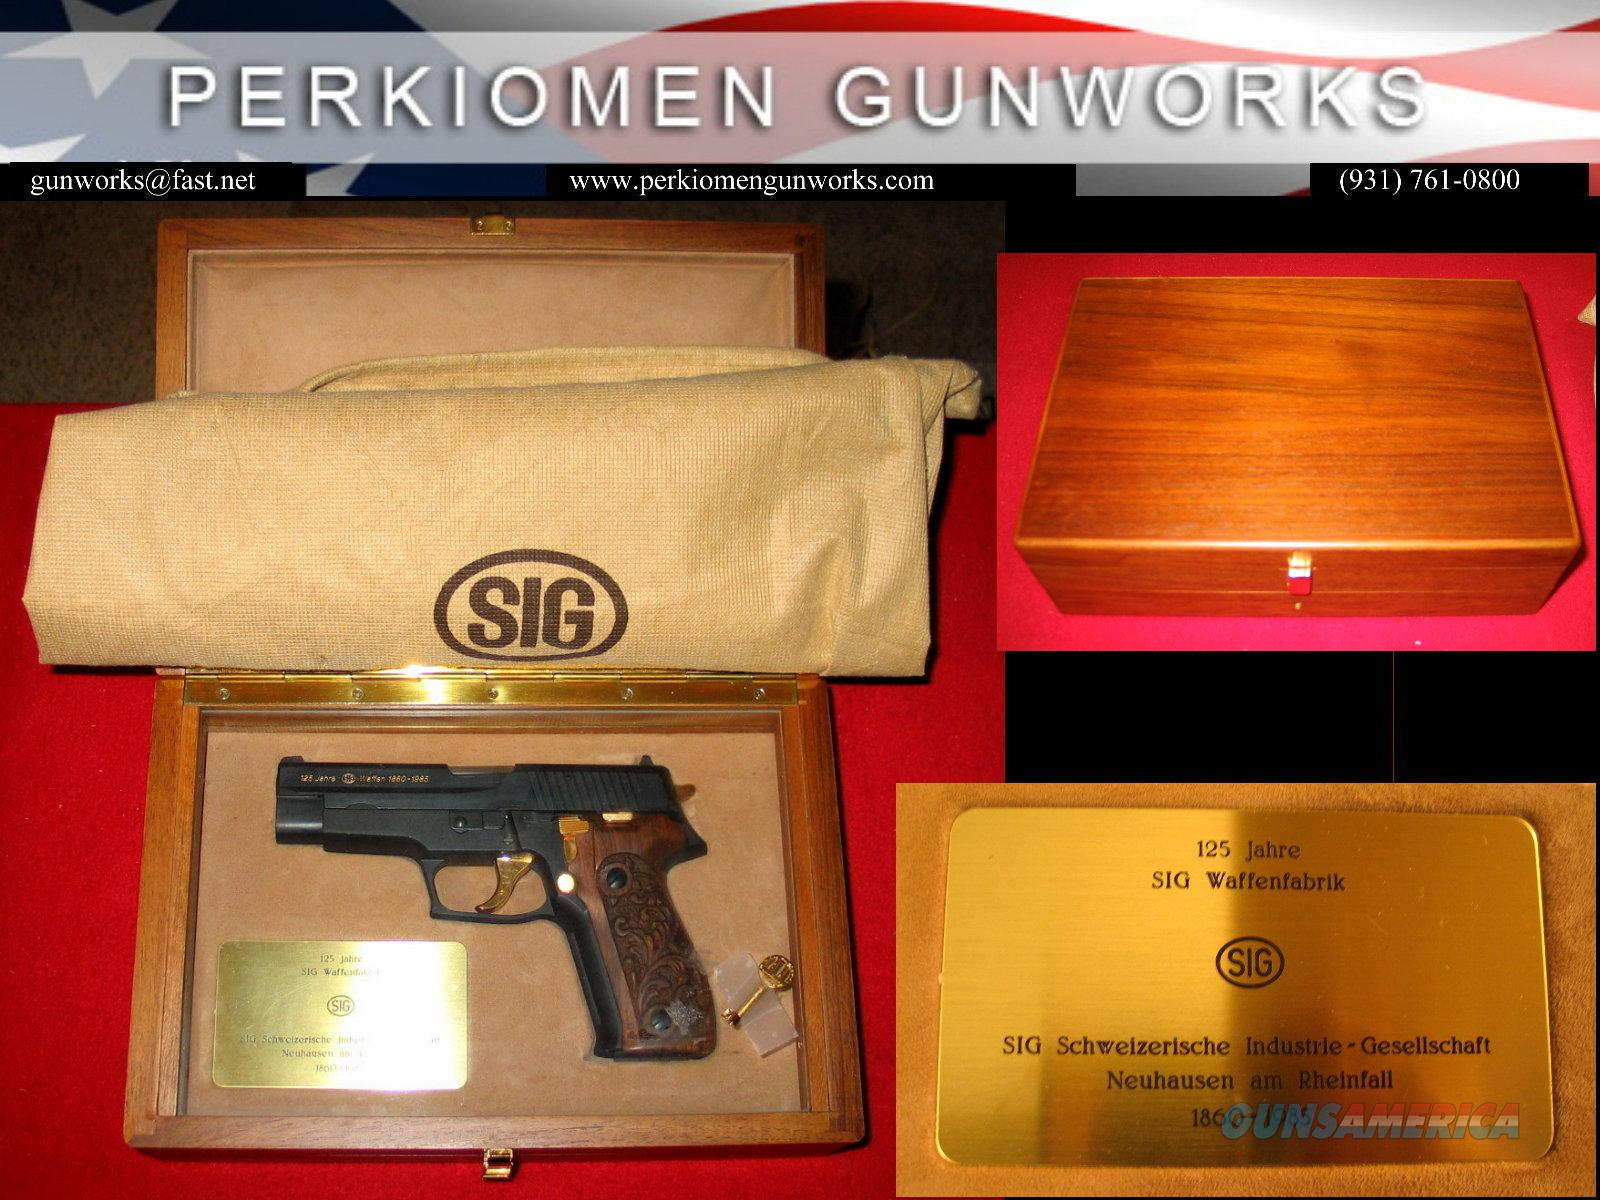 226 Jubilee 9MM Limited Edition 125th Anniversary w/case - unfired  Guns > Pistols > Sig - Sauer/Sigarms Pistols > P226